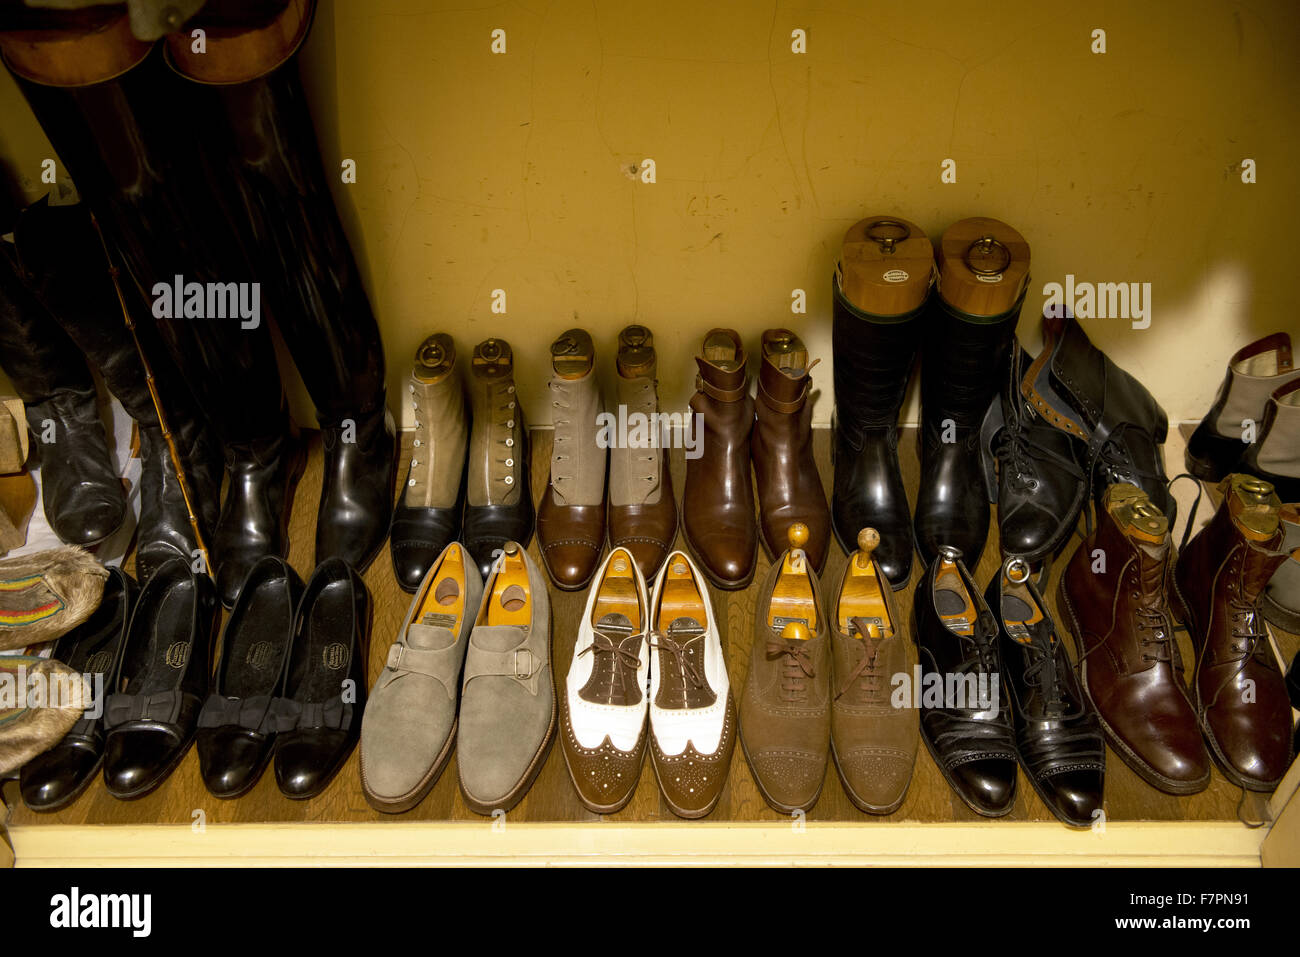 A collection of shoes at Anglesey Abbey, Gardens and Lode Mill, Cambridgeshire. - Stock Image